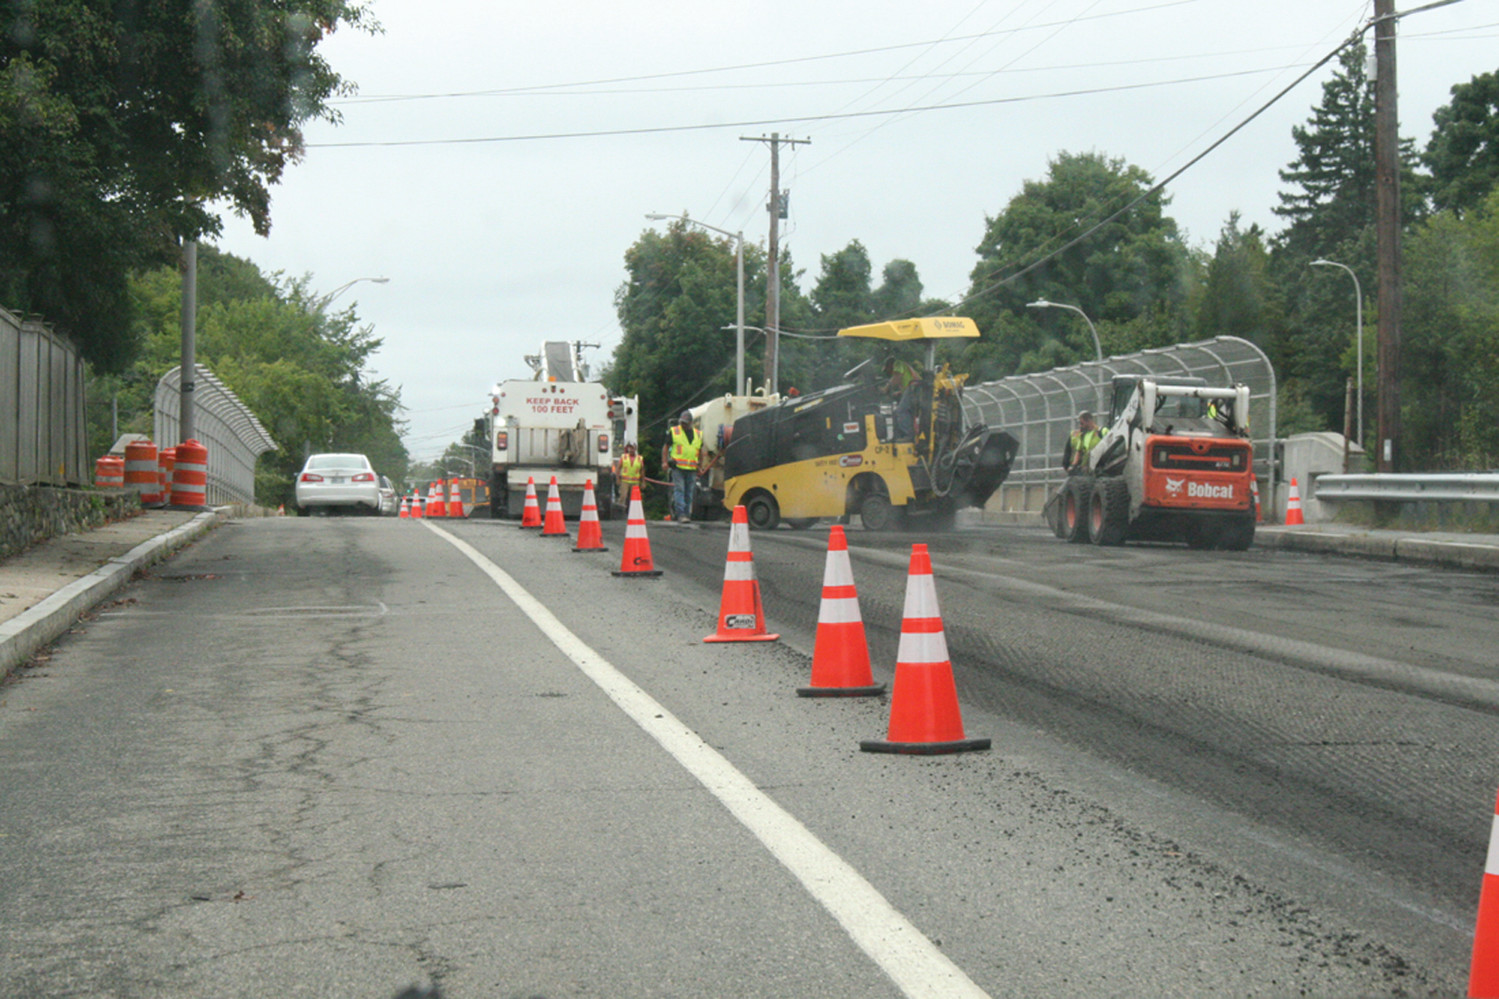 IT'S STARTED: The milling of Hartford Avenue in preparation of repaving an estimated 8 miles of the road started this week. The $3.3 million program is projected to be completed by the end of October.